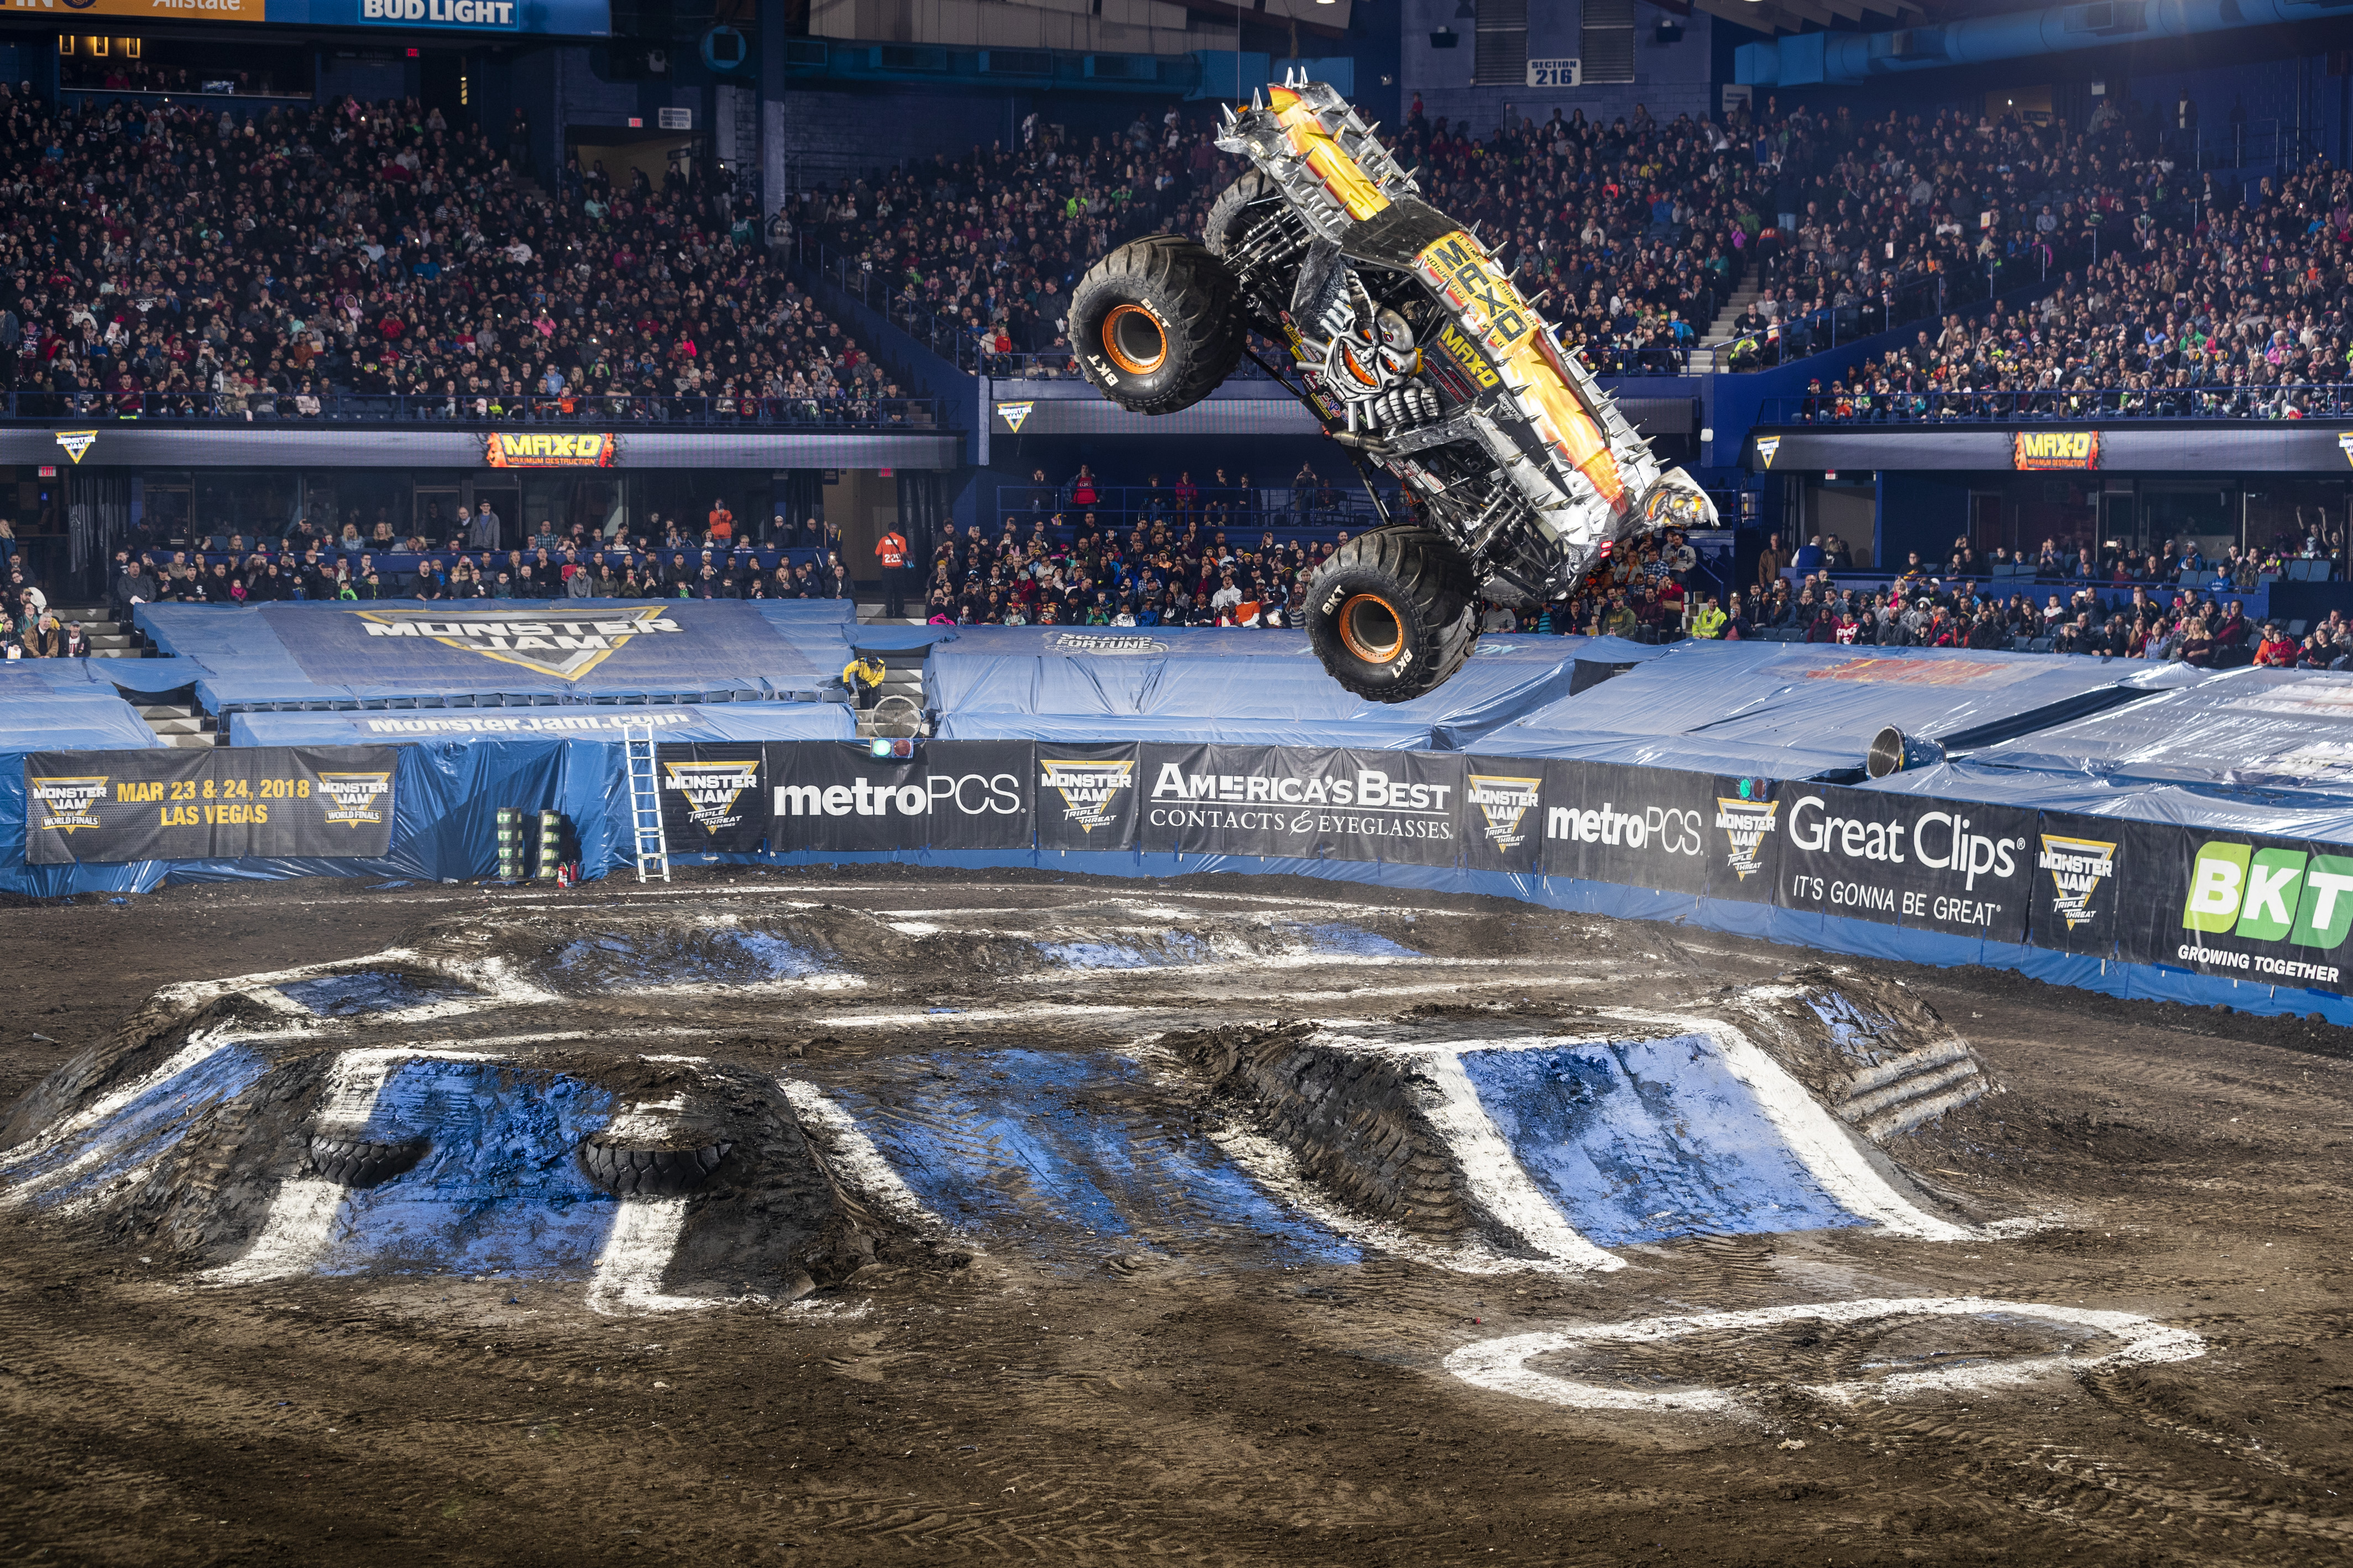 Feld Motor Sports - Monster Jam Photo for Release